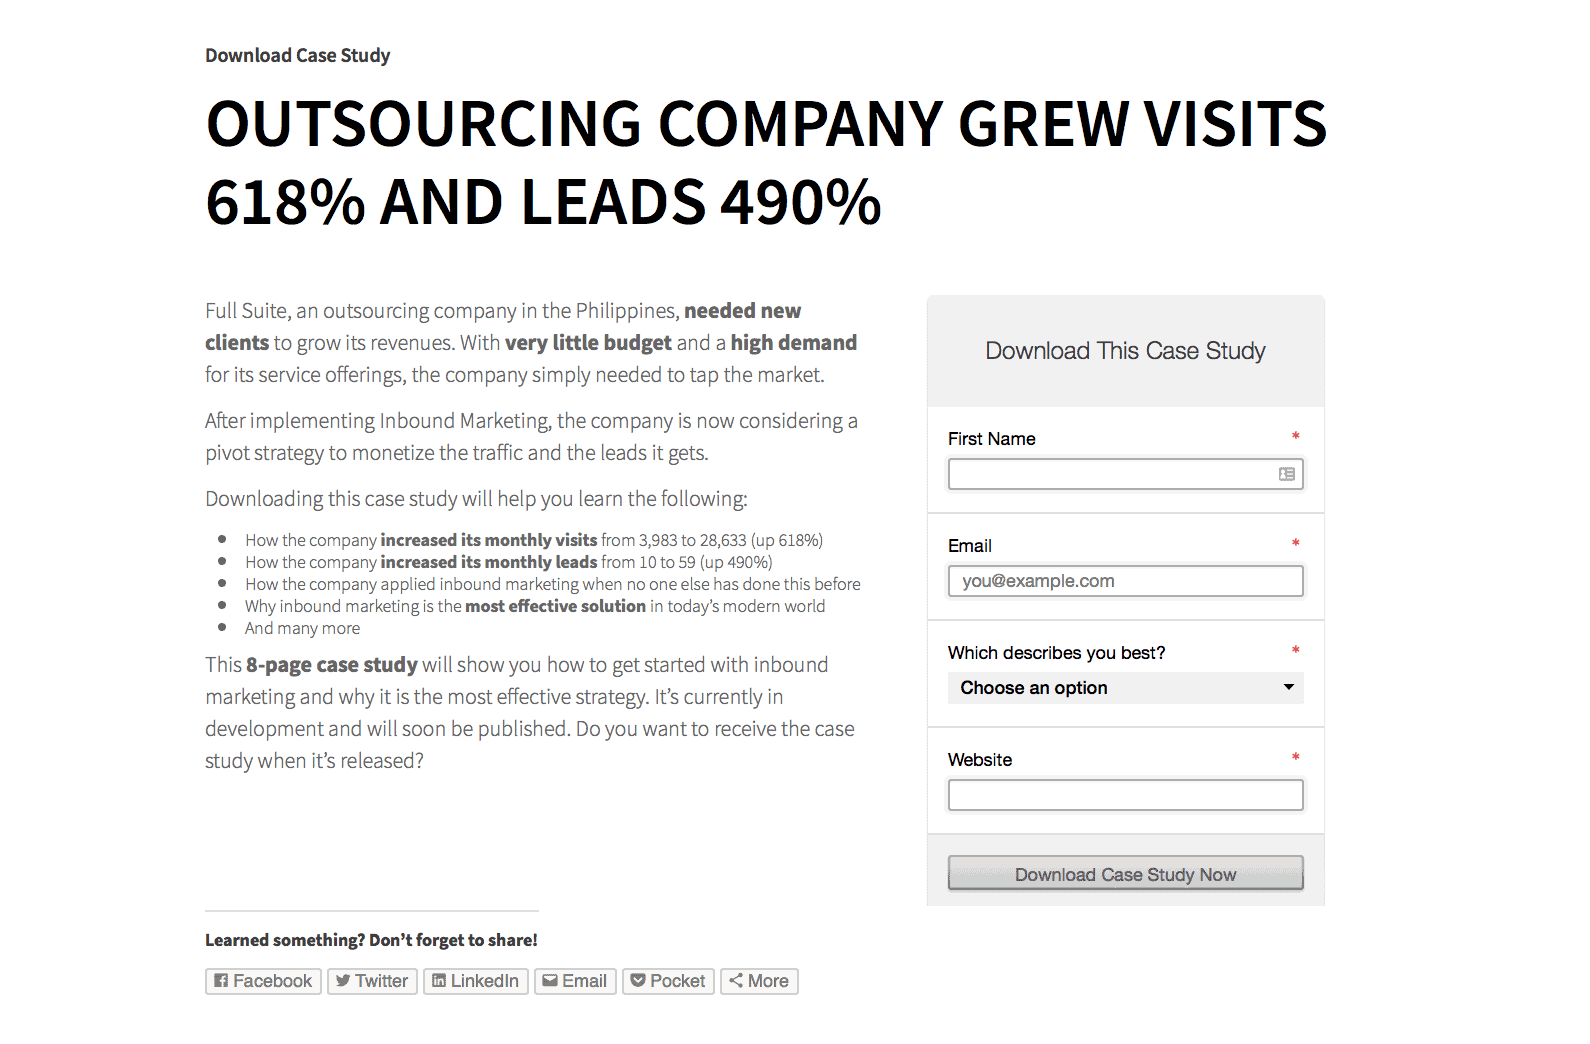 Landing Page Example: Full Suite Case Study